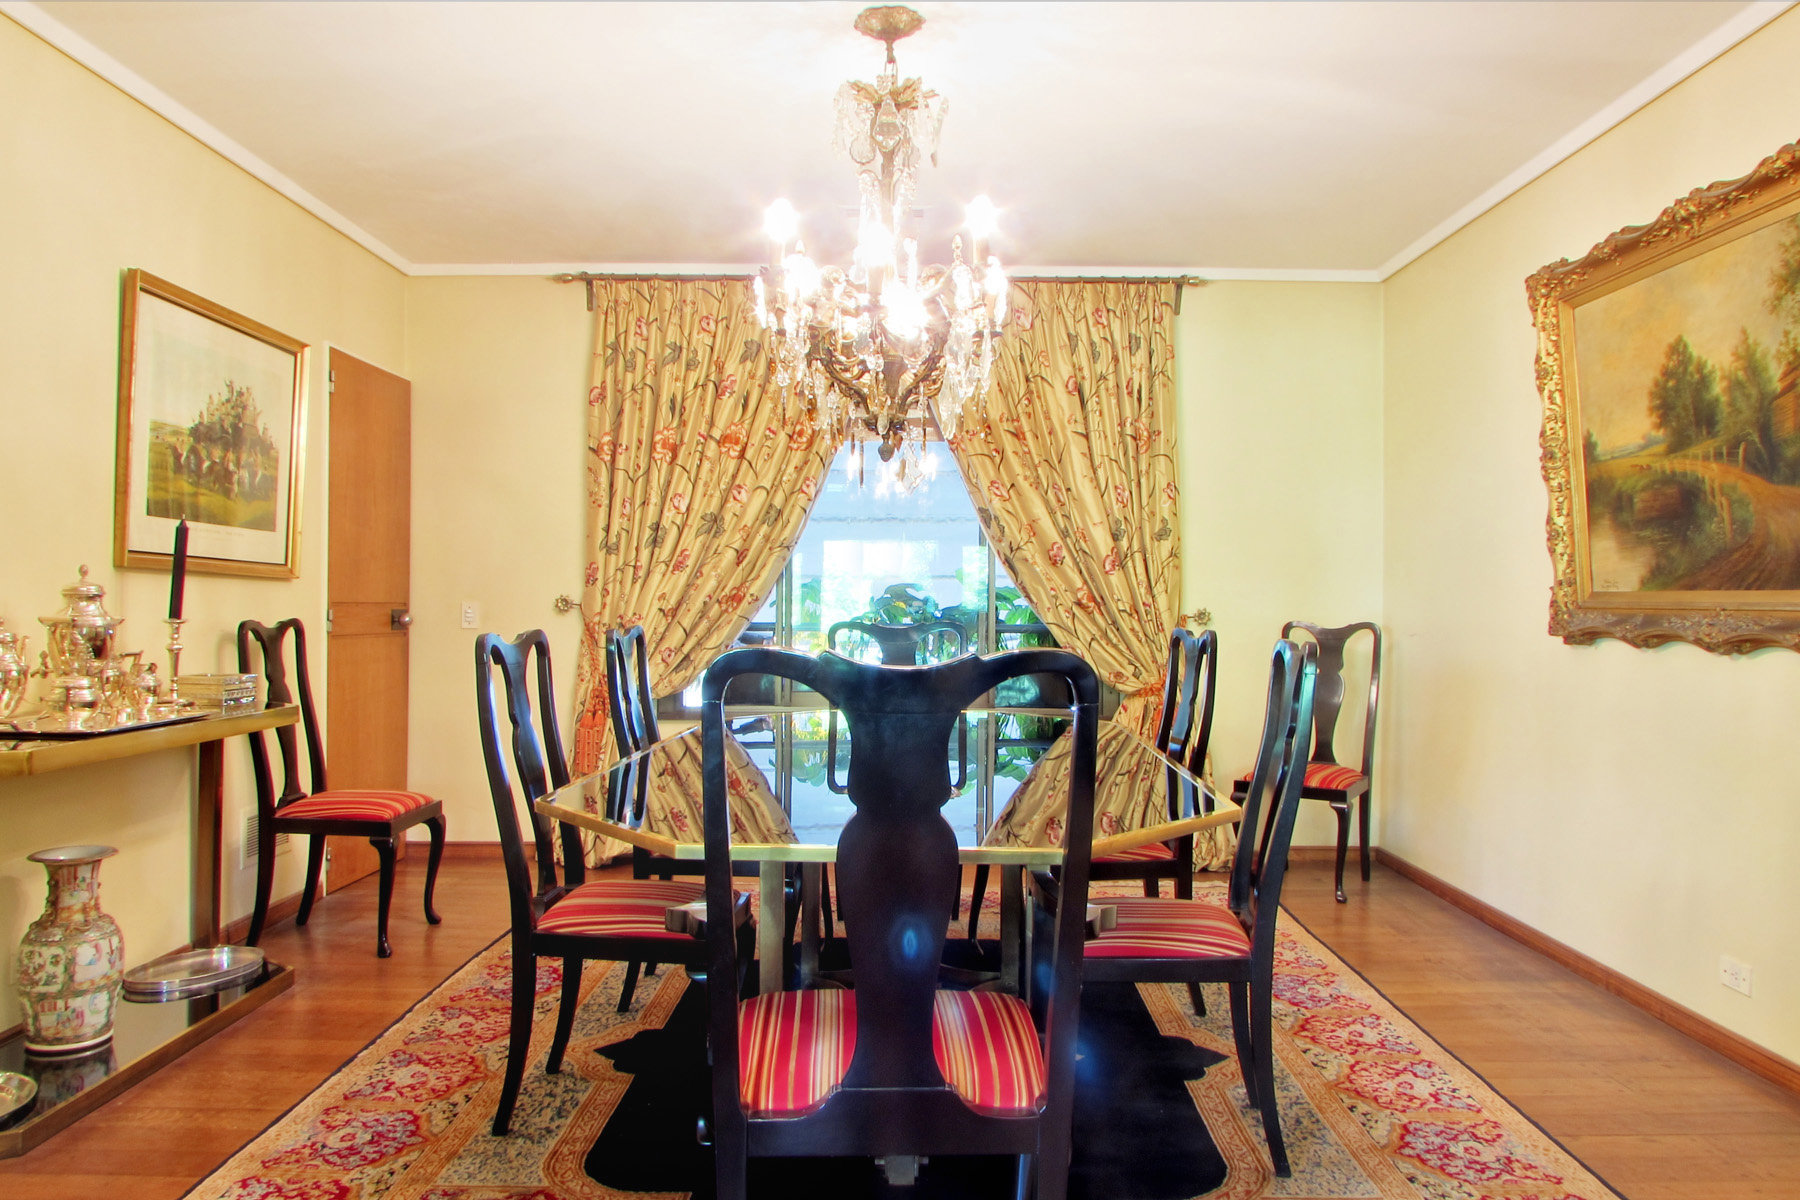 Additional photo for property listing at Luxury Penthouse in Palermo Chico Aguado 2800 Buenos Aires, Buenos Aires 1425 Argentina